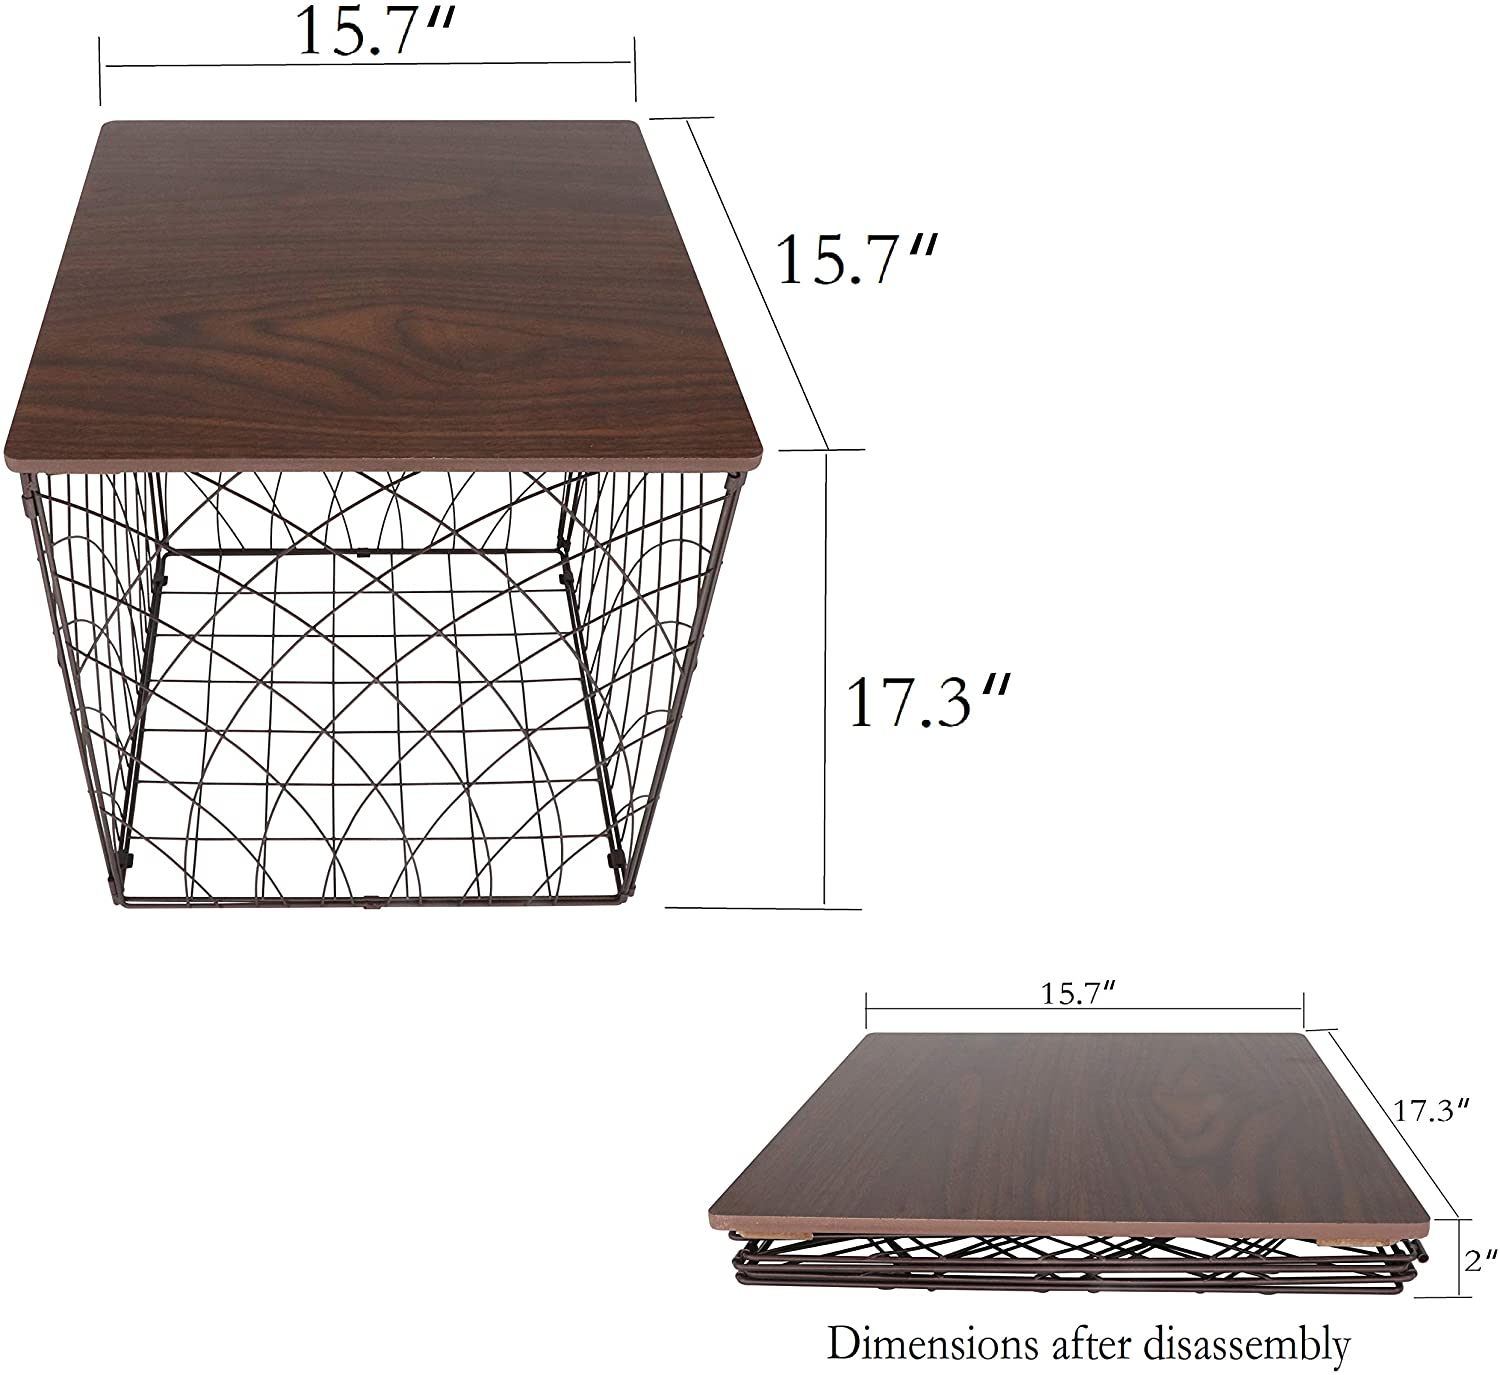 is Suitable for Home and Office as Coffee Table or Storage which has Large Storage Capacity Aurynns Metal Detachable Tea Table